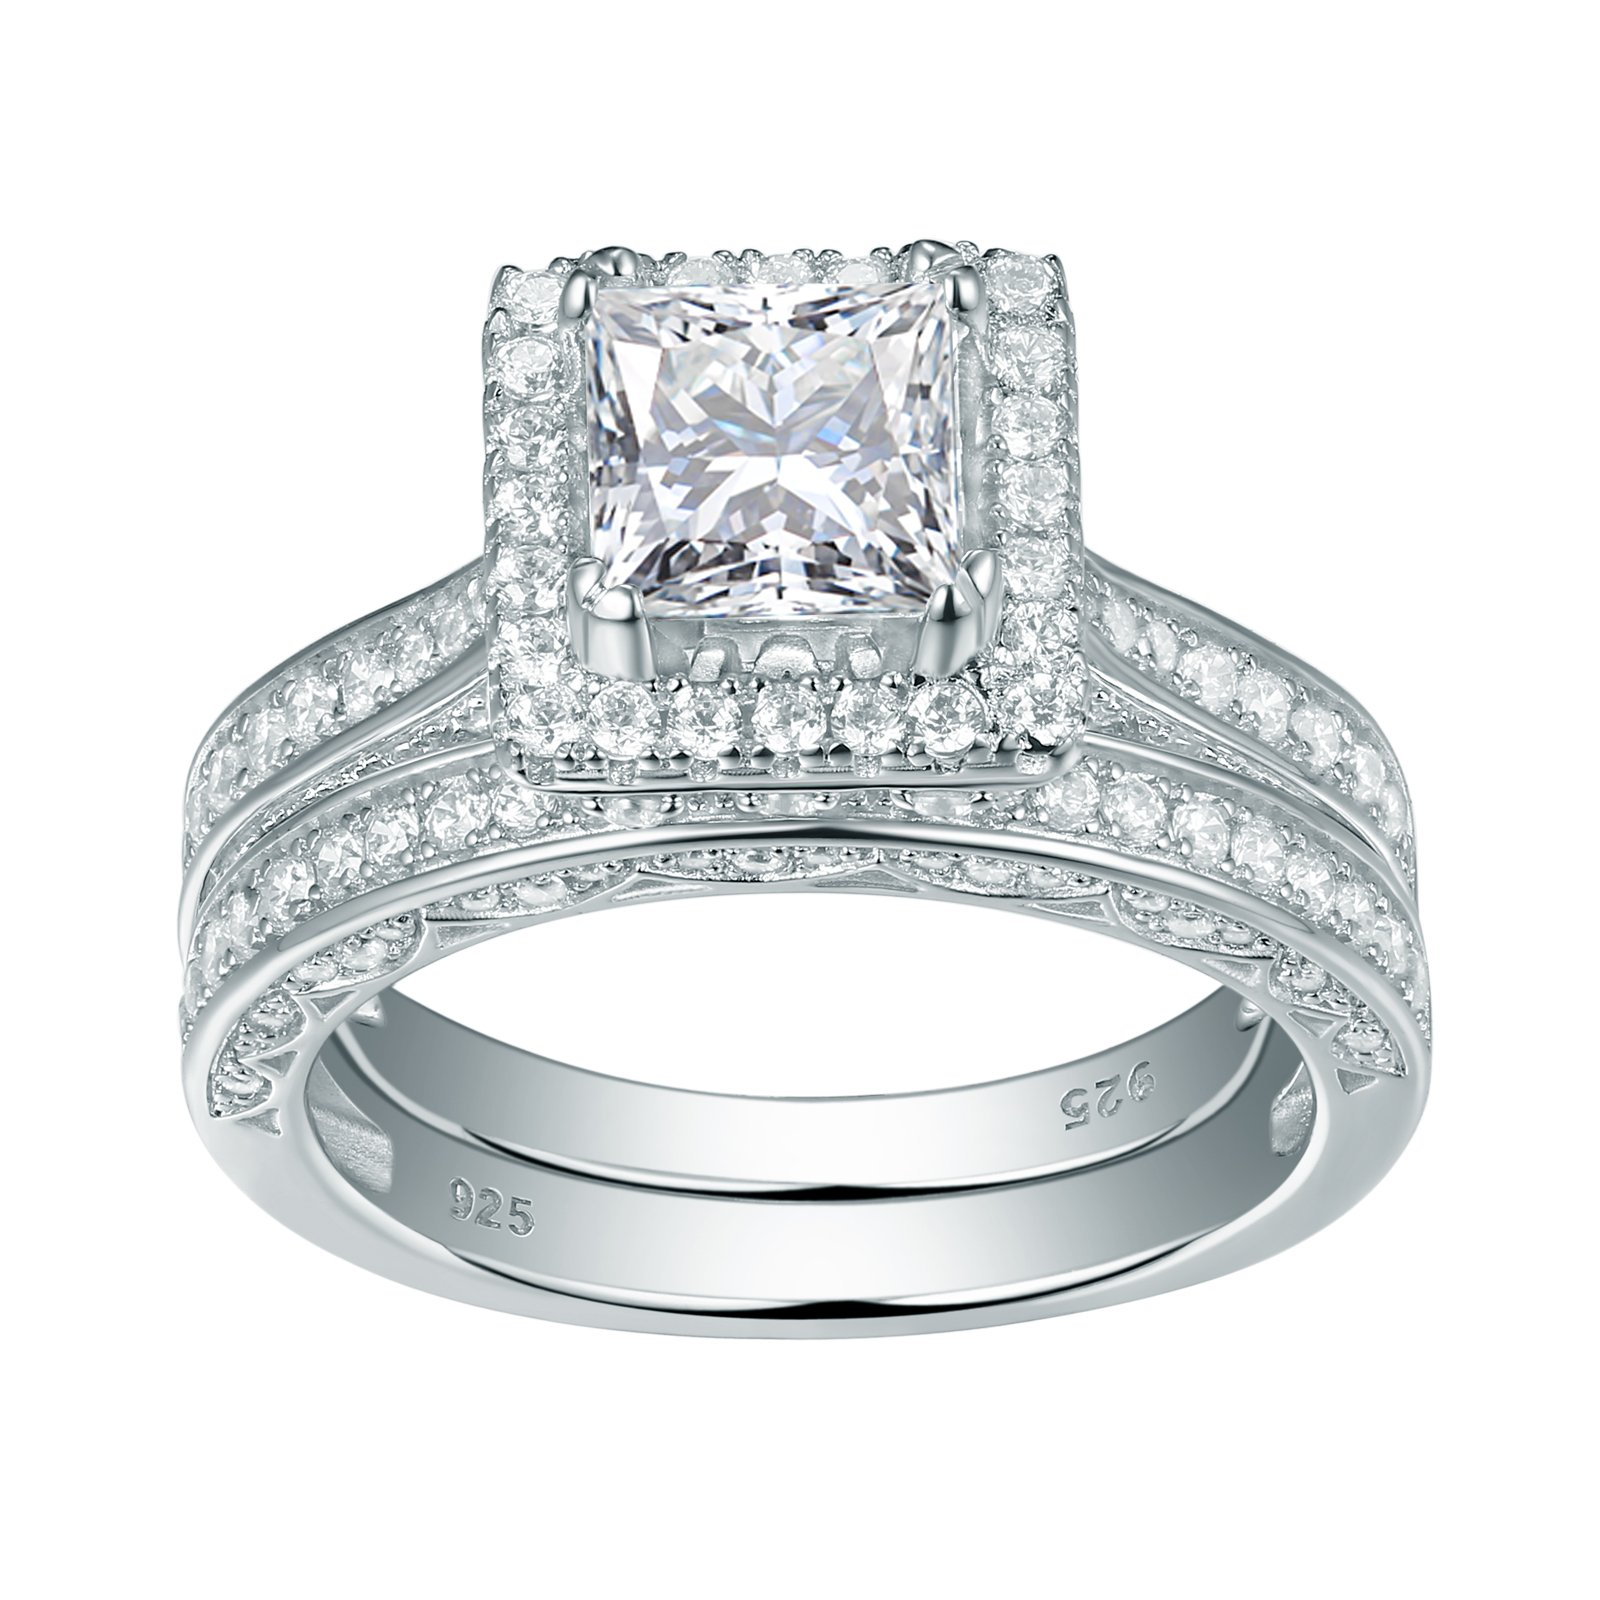 Newshe Wedding Band Engagement Ring Set For Women 925 Sterling Silver 2.8ct Princess White Cz Size 12